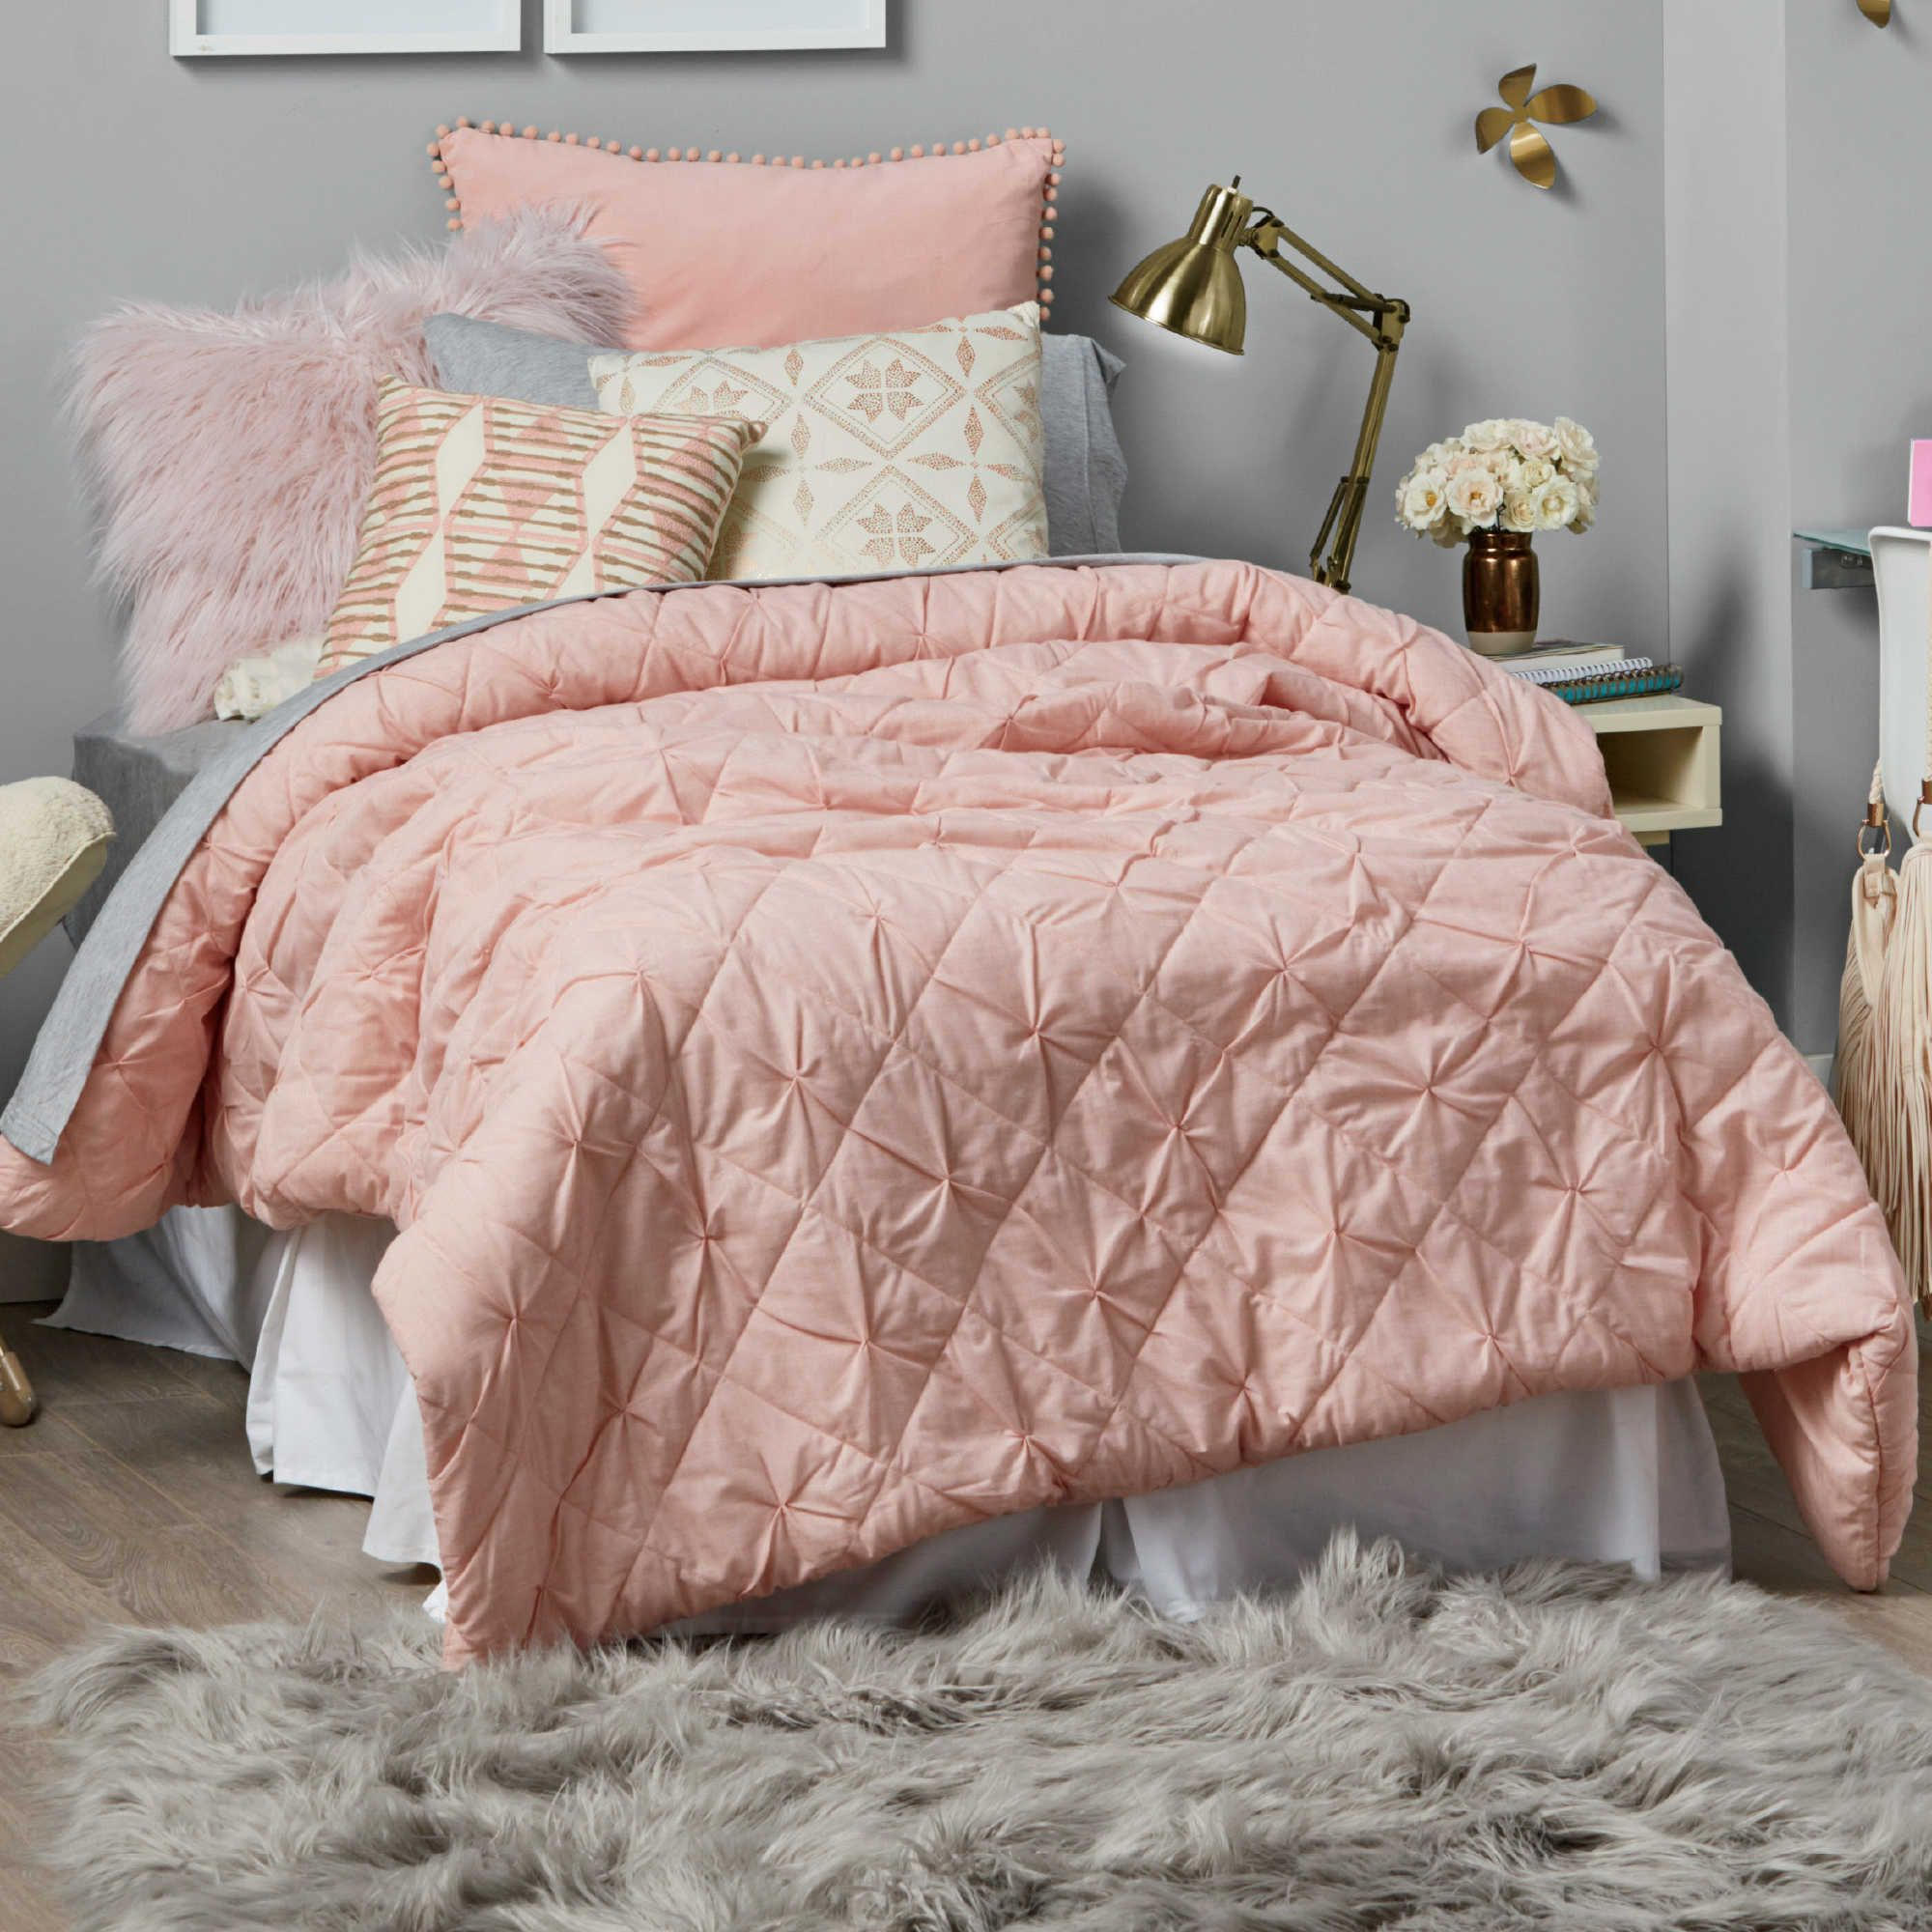 ANother bed bath beyond comforter! comes in this pink or vanilla